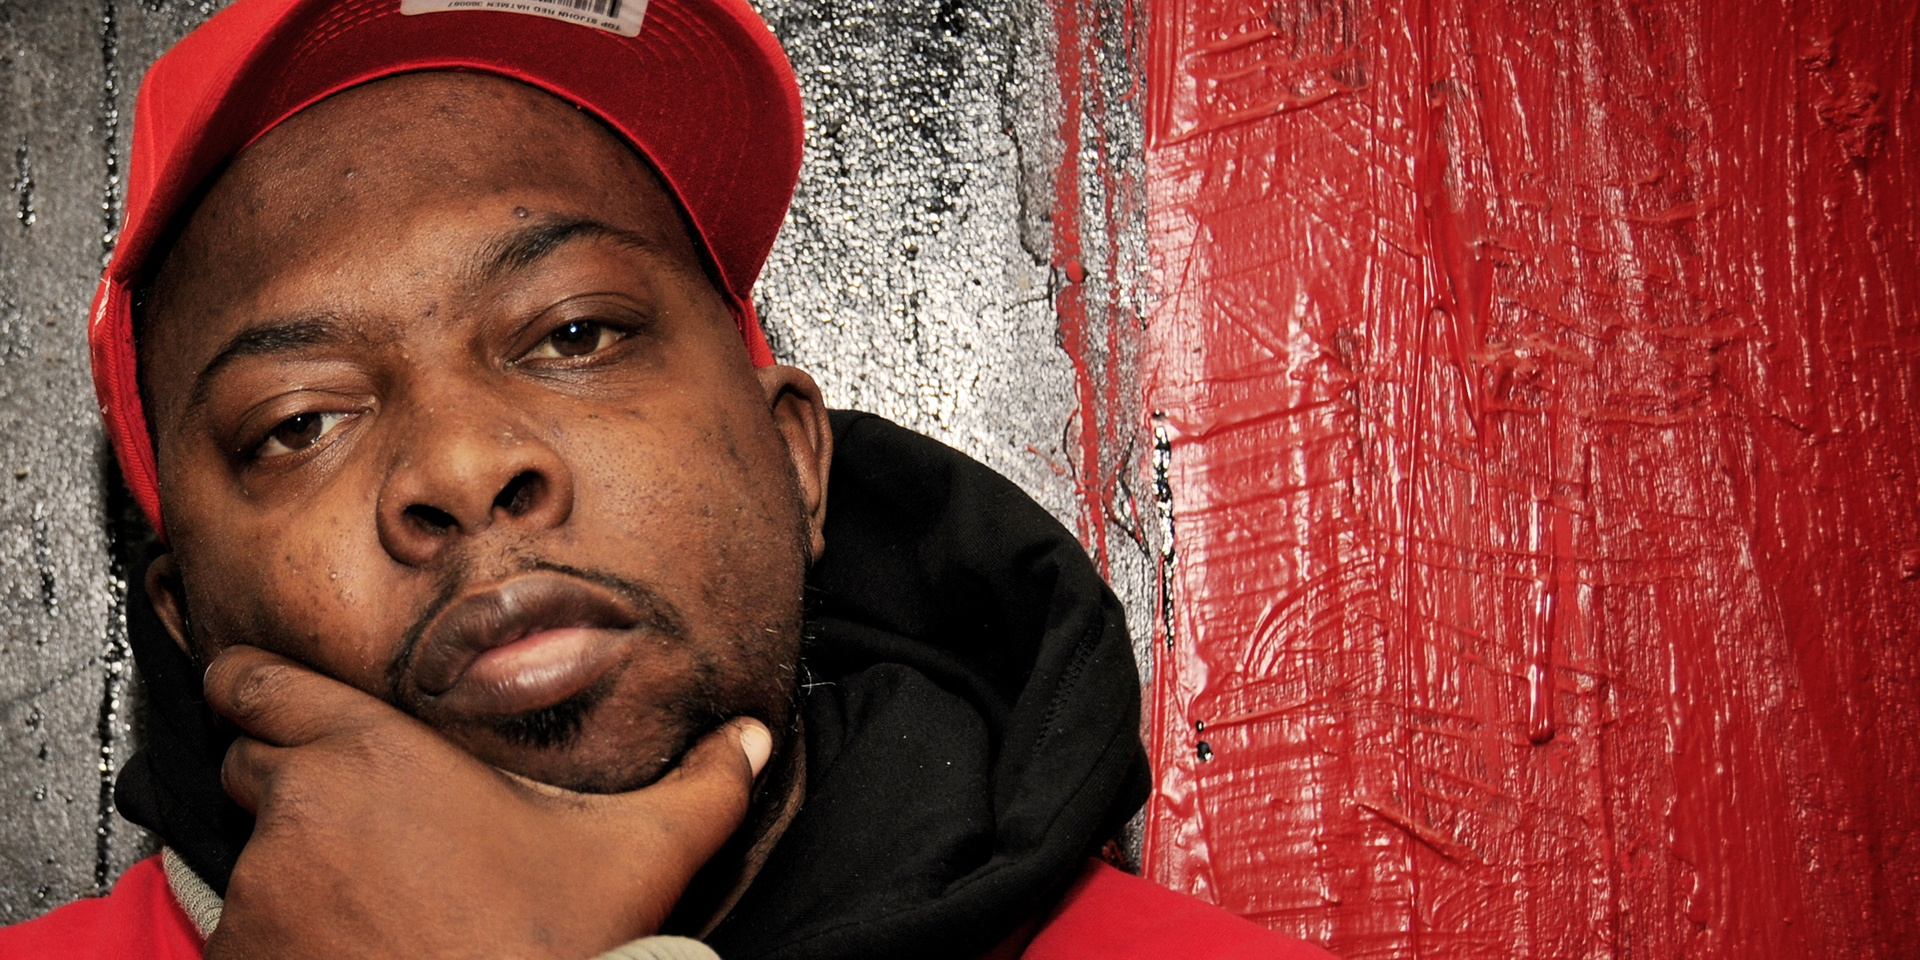 BREAKING: Phife Dawg, founding member of A Tribe Called Quest, has reportedly passed away